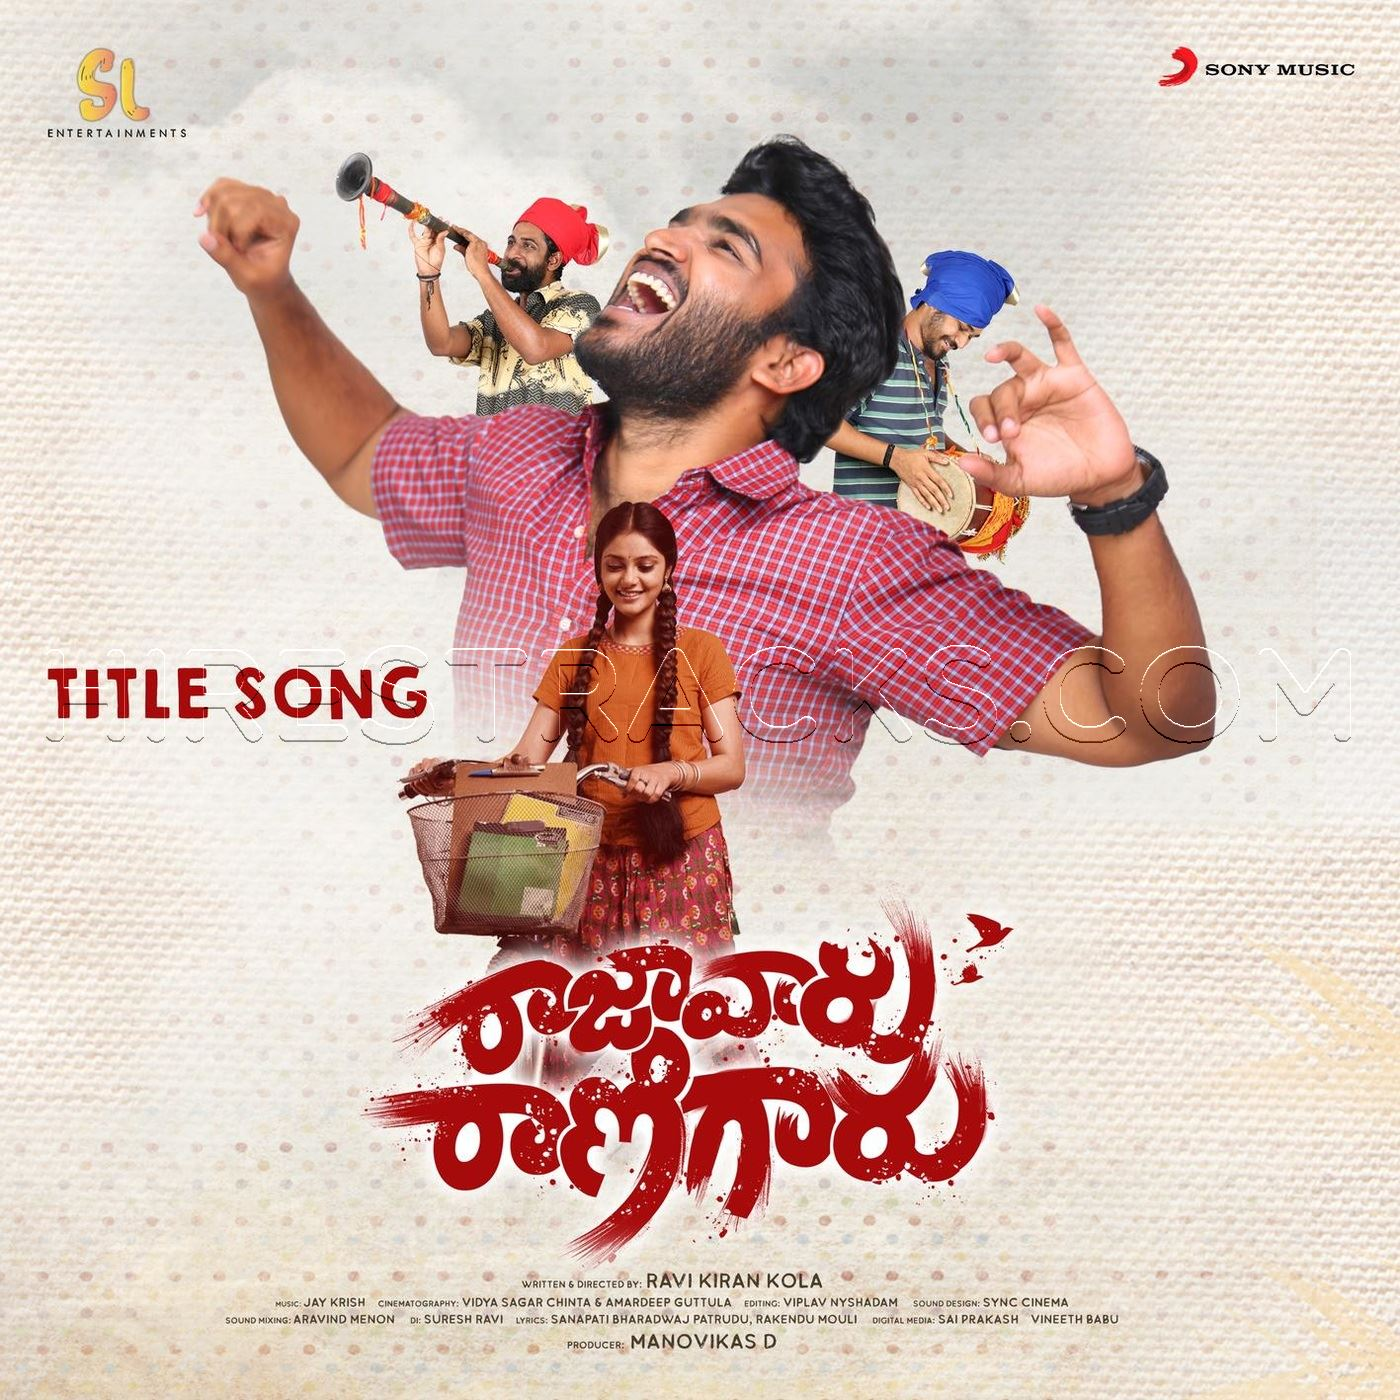 Raja Vaaru Rani Gaaru Title Song (From Raja Vaaru Rani Gaaru) (2019) (Jay Krish) (Sony Music)